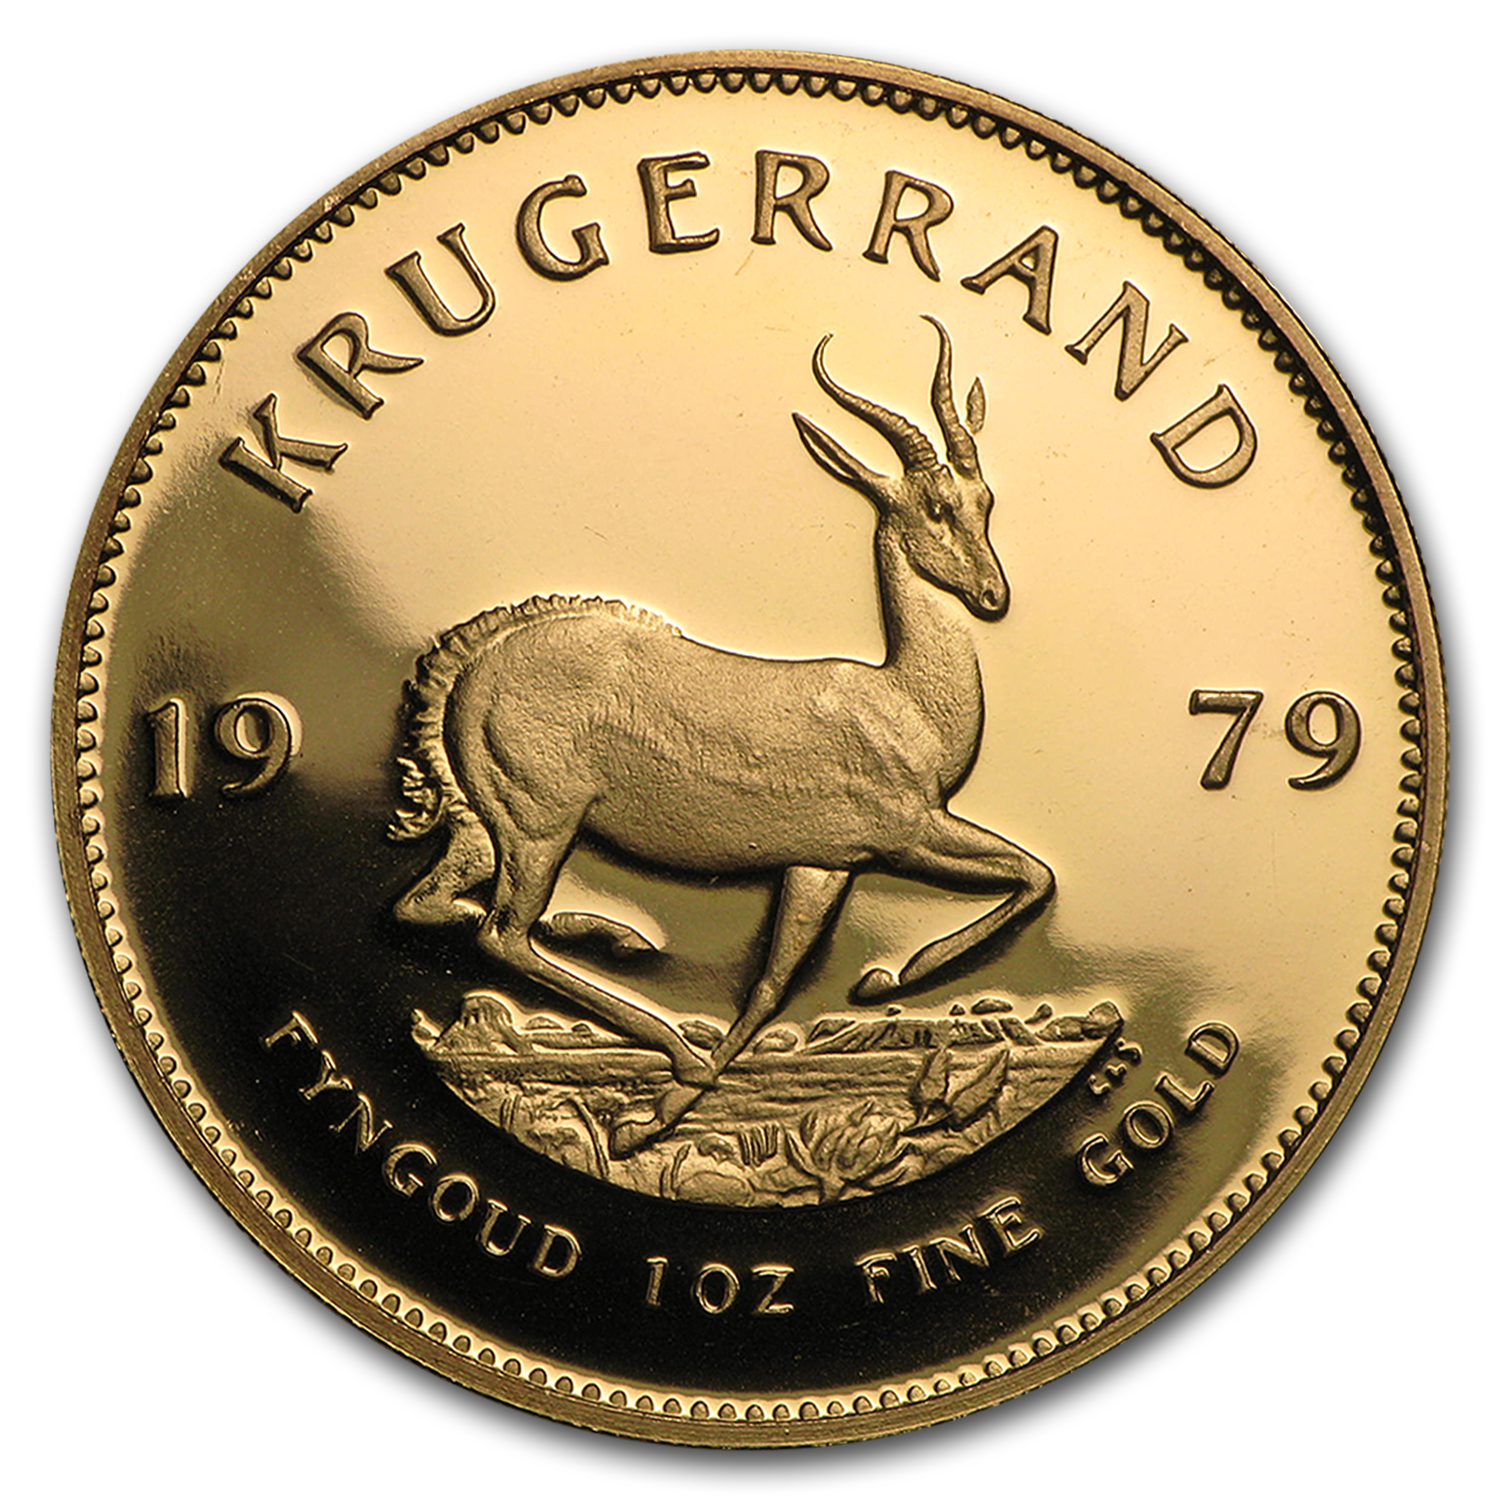 1979 South Africa 1 oz Proof Gold Krugerrand